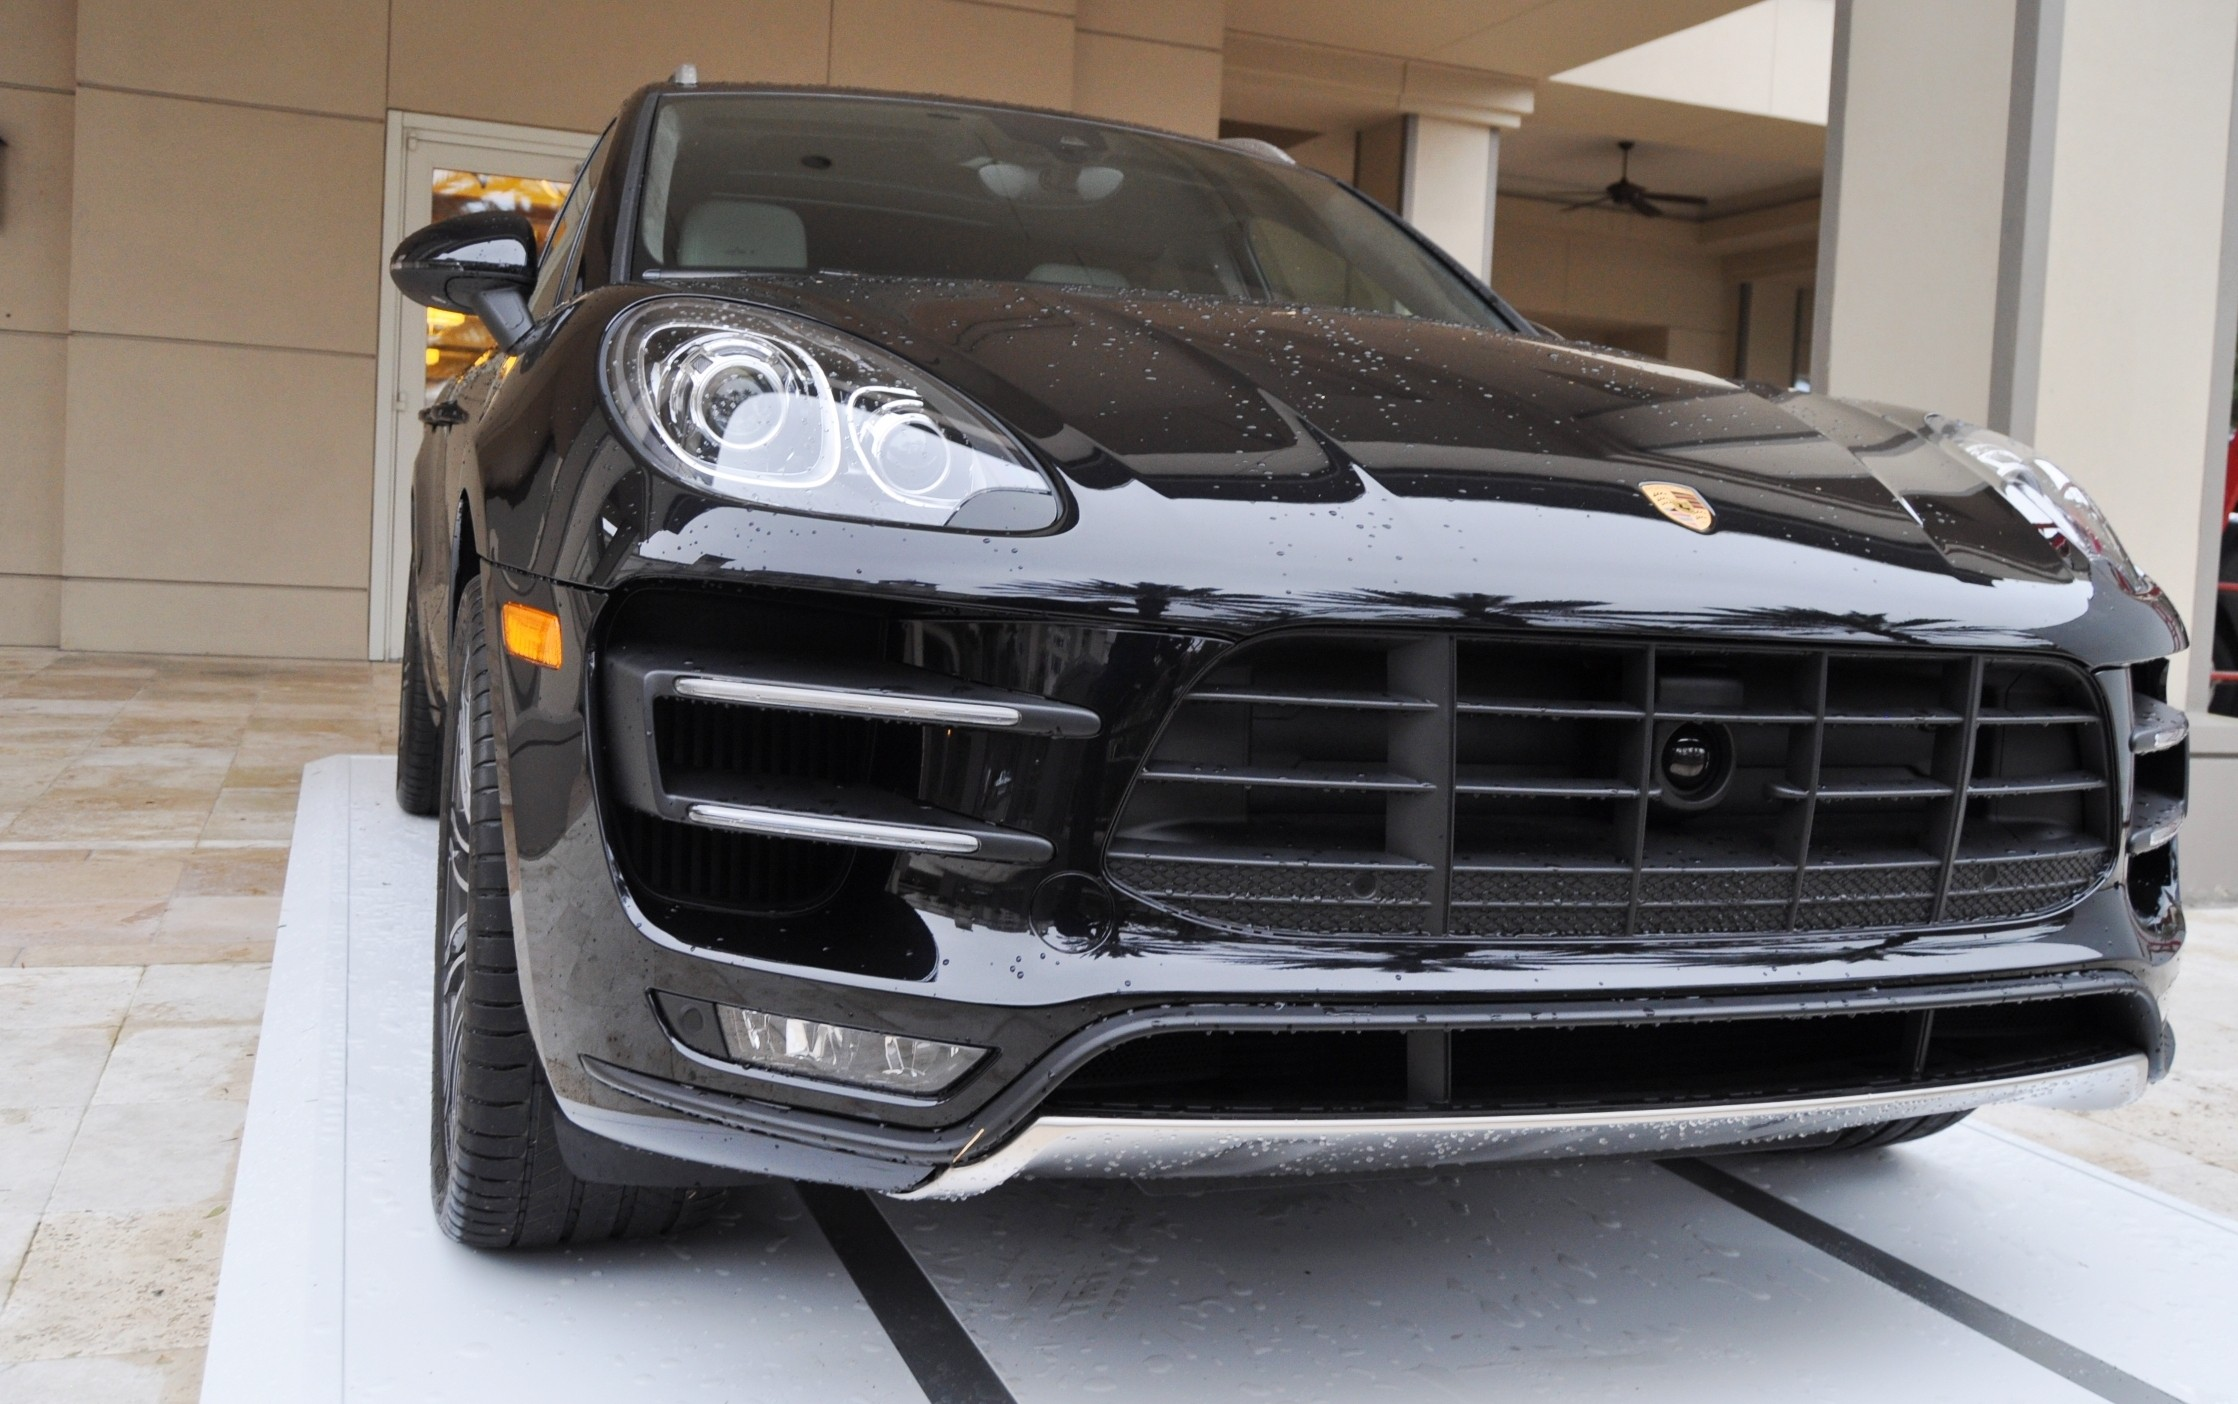 2015 Porsche Macan Turbo -- Looking Amazing, Athletic and Nimble -- 50+ Real-Life Photos Inside and Out 4